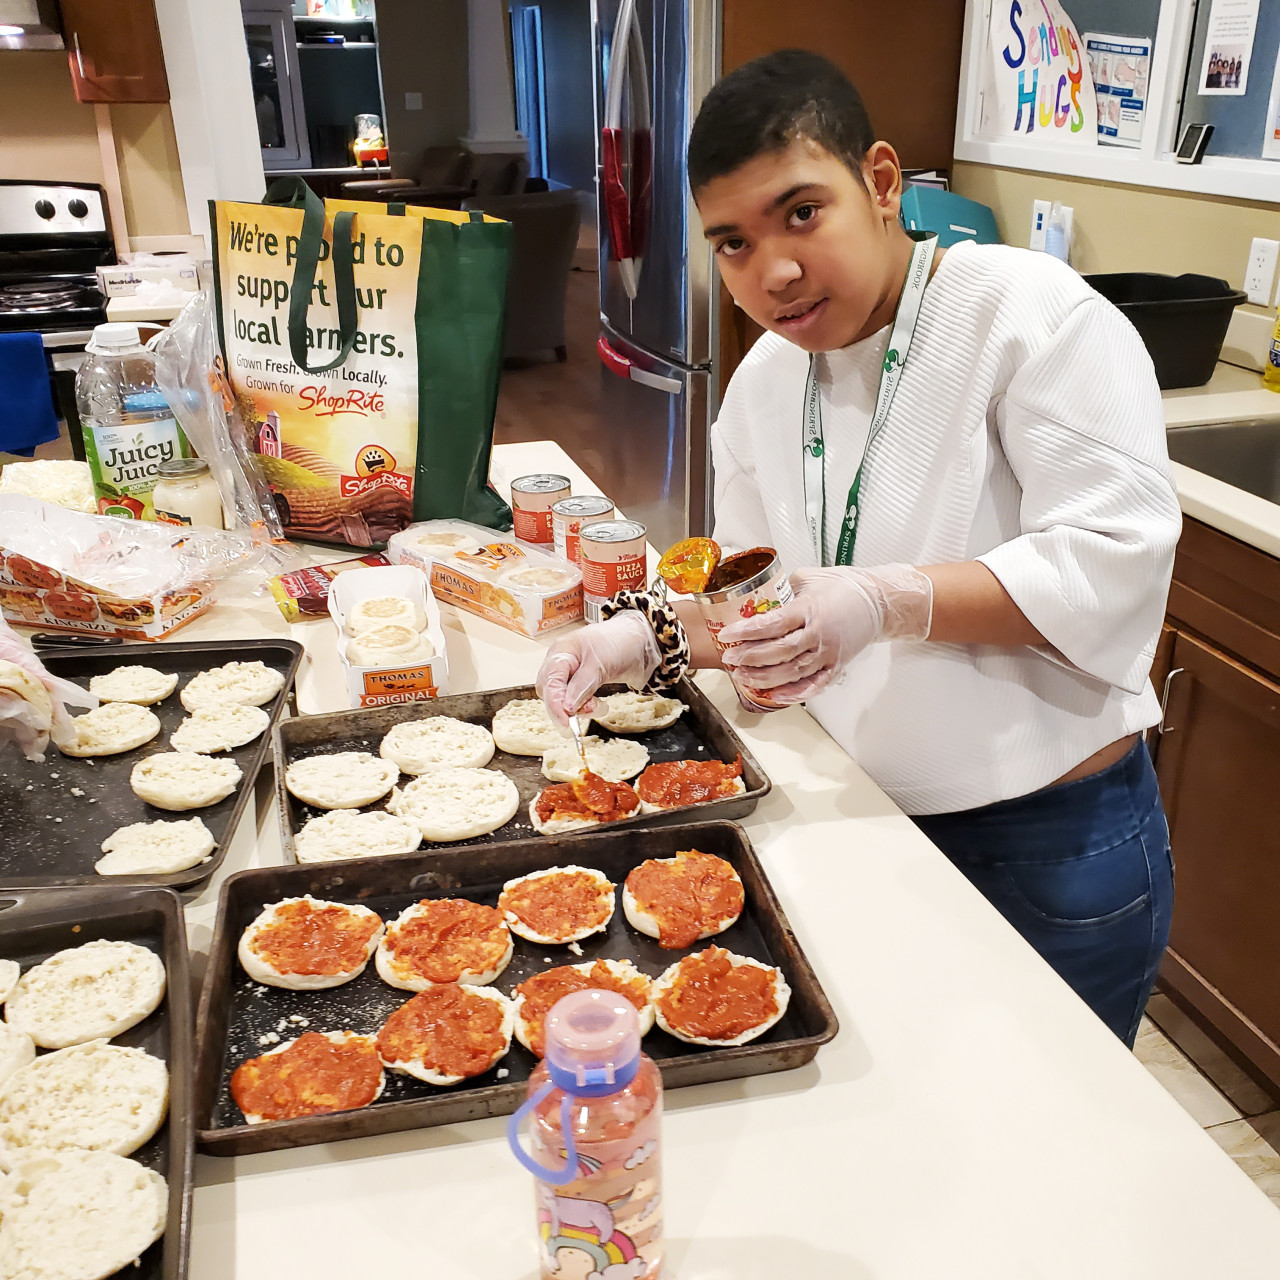 English Muffing Pizzas for Challenge - What's Cookin'? - Meditation Monday